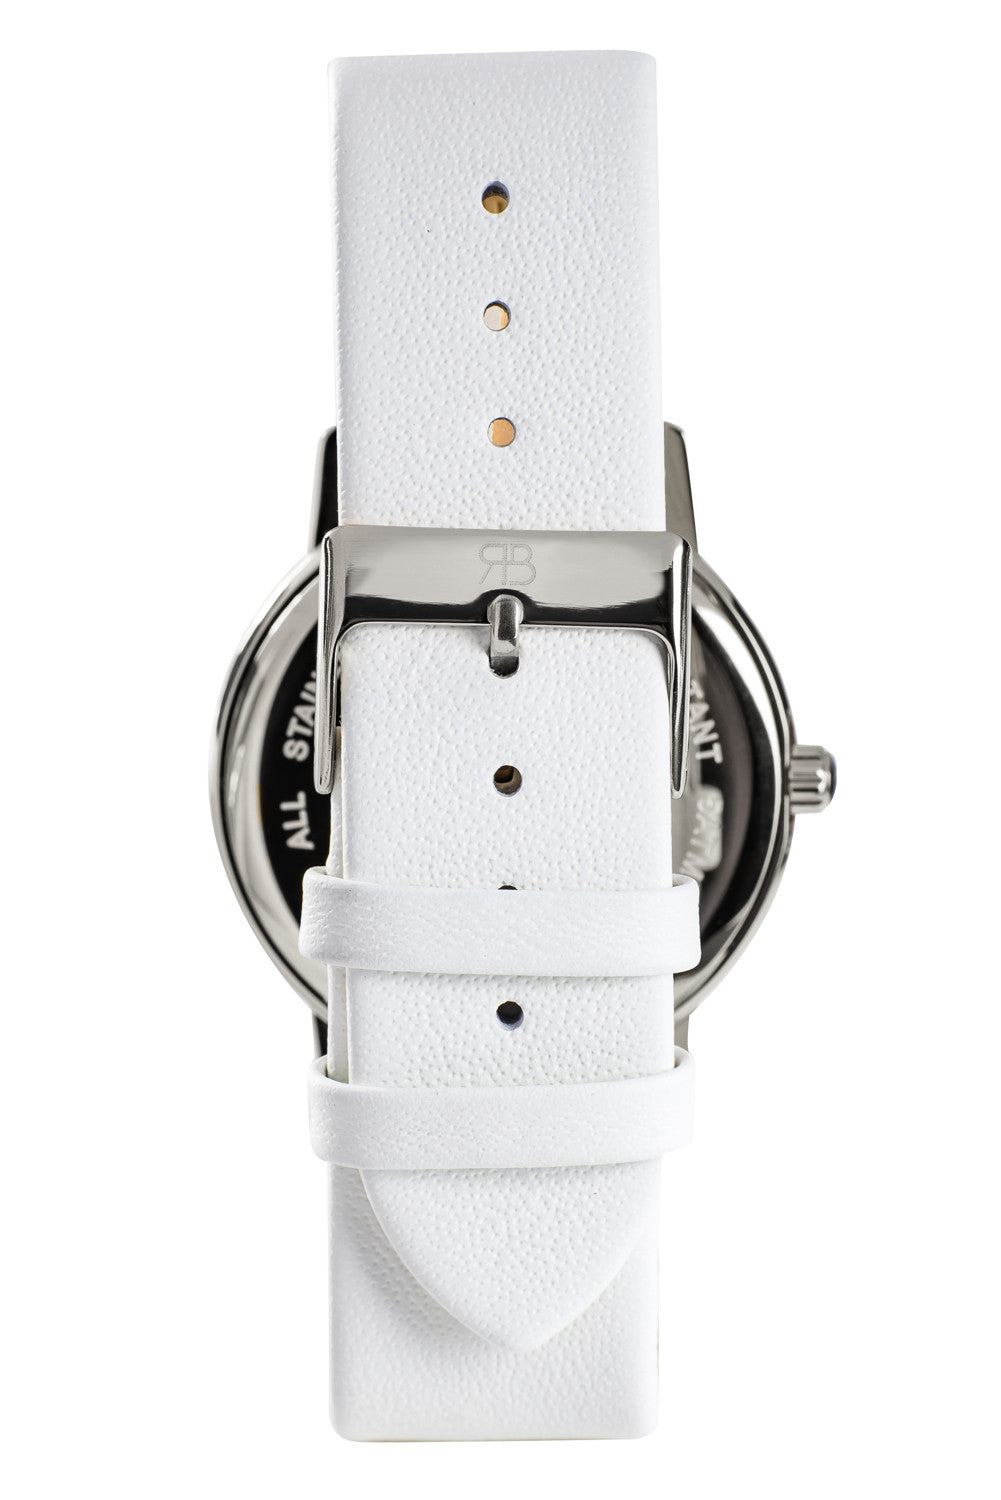 Silver Rossbanna Cornice watch with white strap, minimal, elegant, timeless, unique timepiece 05